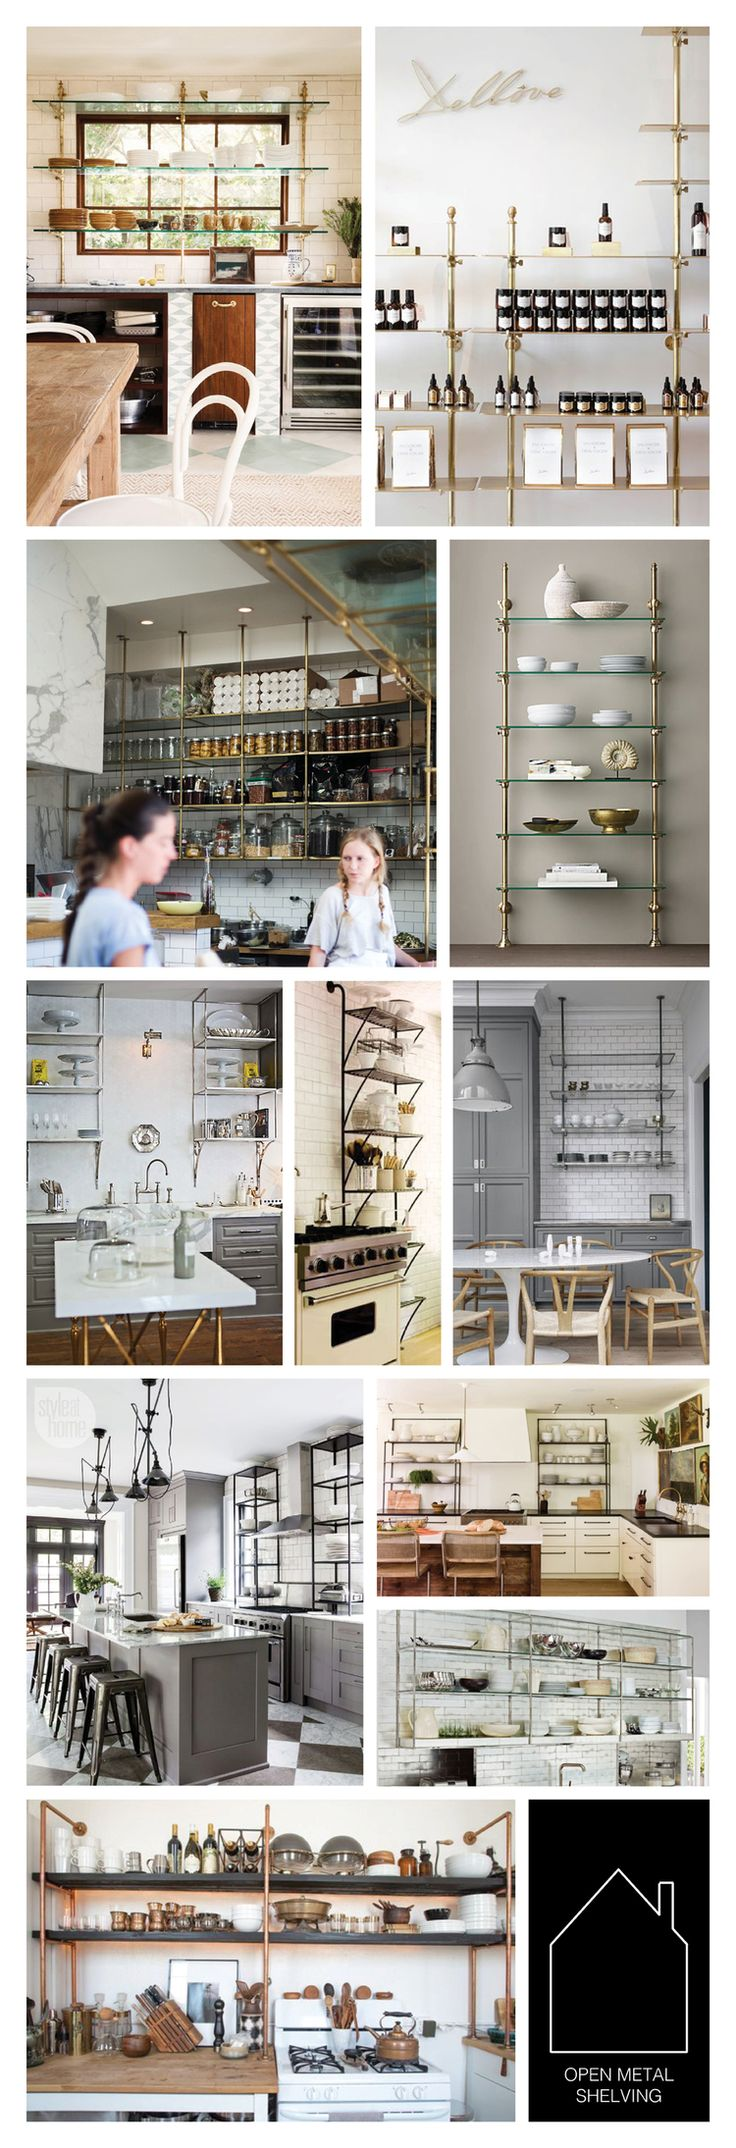 from top left - Hawaiian vacation home designed by Michelle R. Smith via DOMAINE - retail brass shelving via source unknown - commercial brass shelving via DISC JOURNAL - 1930s French Bistro Shelving via Restoration Hardware - LA home of Gwyneth Paltrow via Popsugar - full height iron shelving via COCO COZY - home of Susan Greenleaf via Lonny - industrial kitchen design by Ingrid Oomen via Style At Home - home of Lauren Liess - 2012 Kitchen of the Year via House Beautiful - DIY copper…